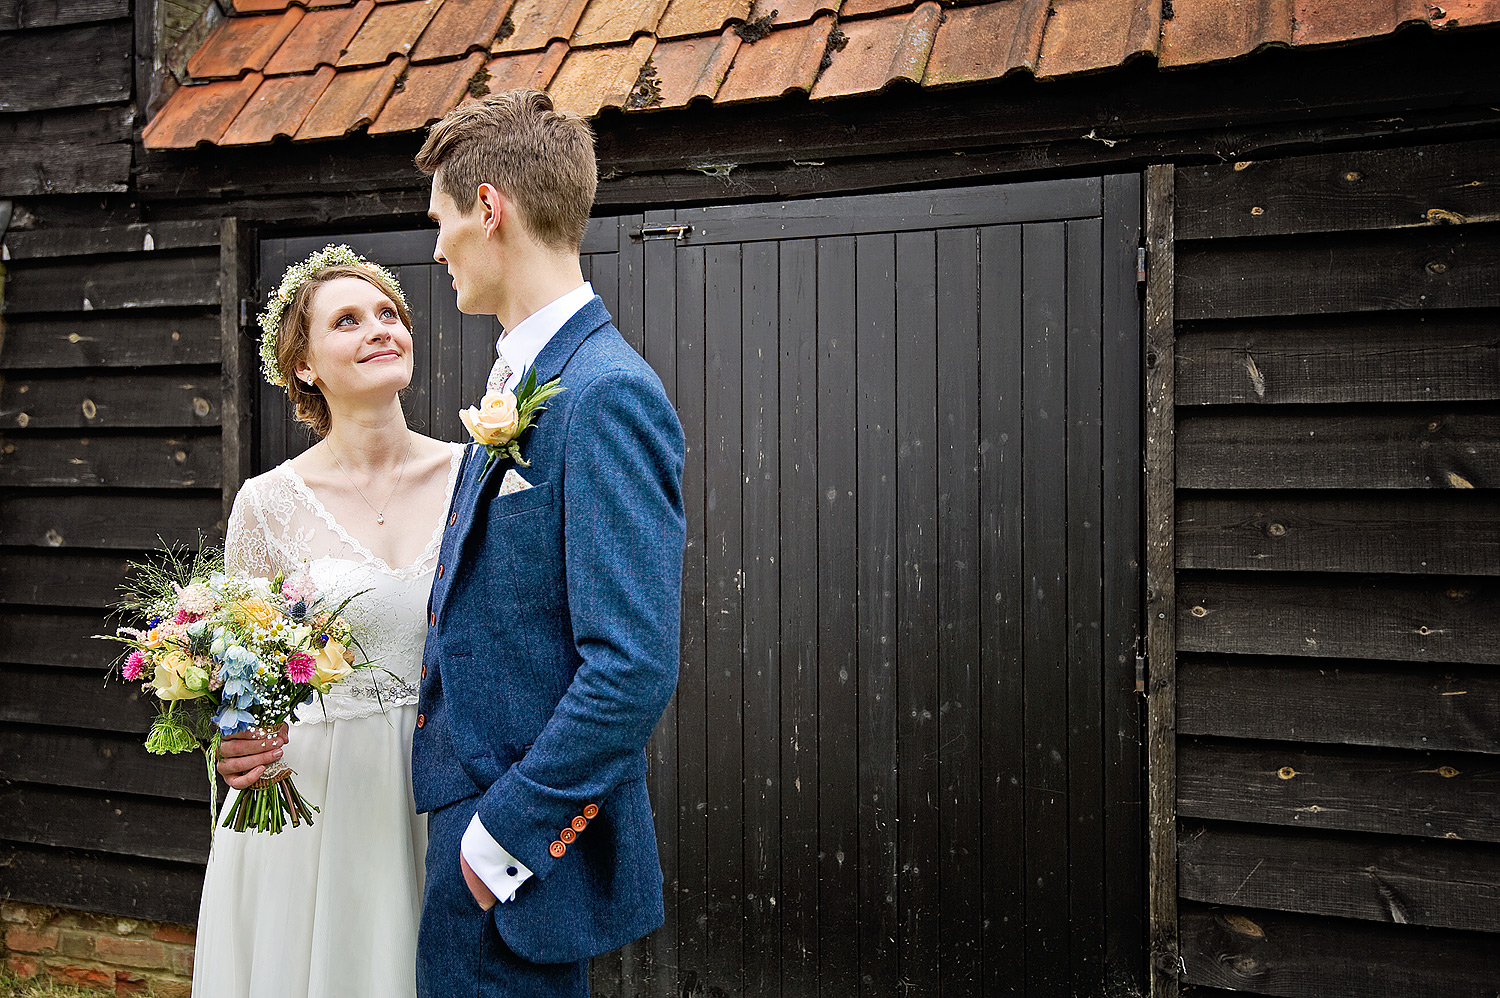 Bride looks into groom's eyes in front of a rustic barn at country styled wedding in the Home Counties.